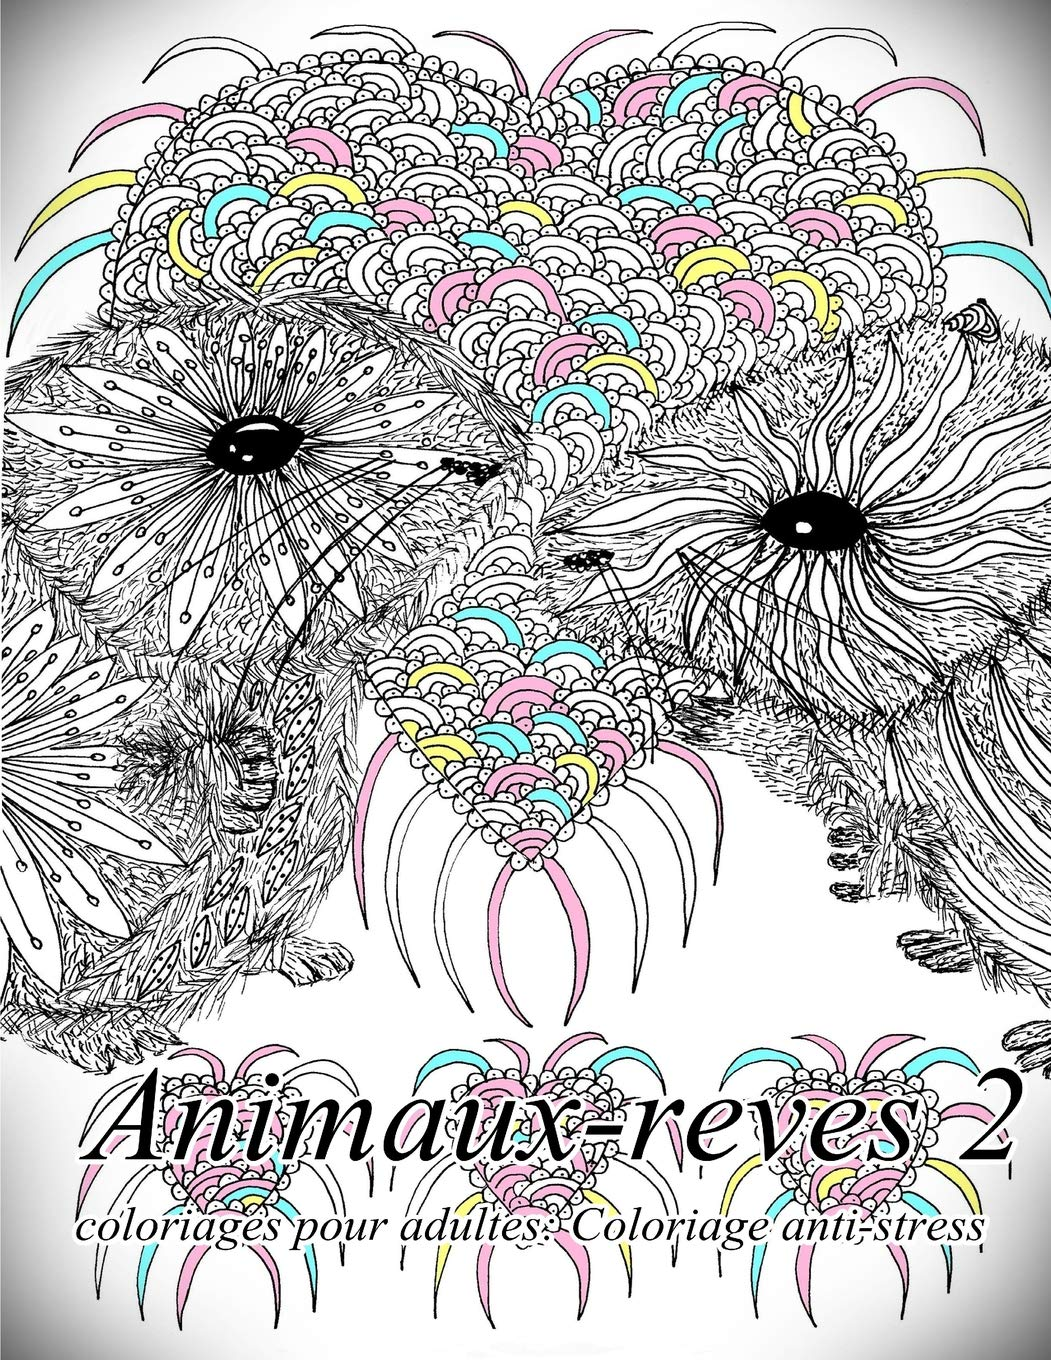 Amazon Com Animaux Reves 2 Coloriages Pour Adultes Coloriage Anti Stress Volume 2 French Edition 9781539493914 The Art Of You Books